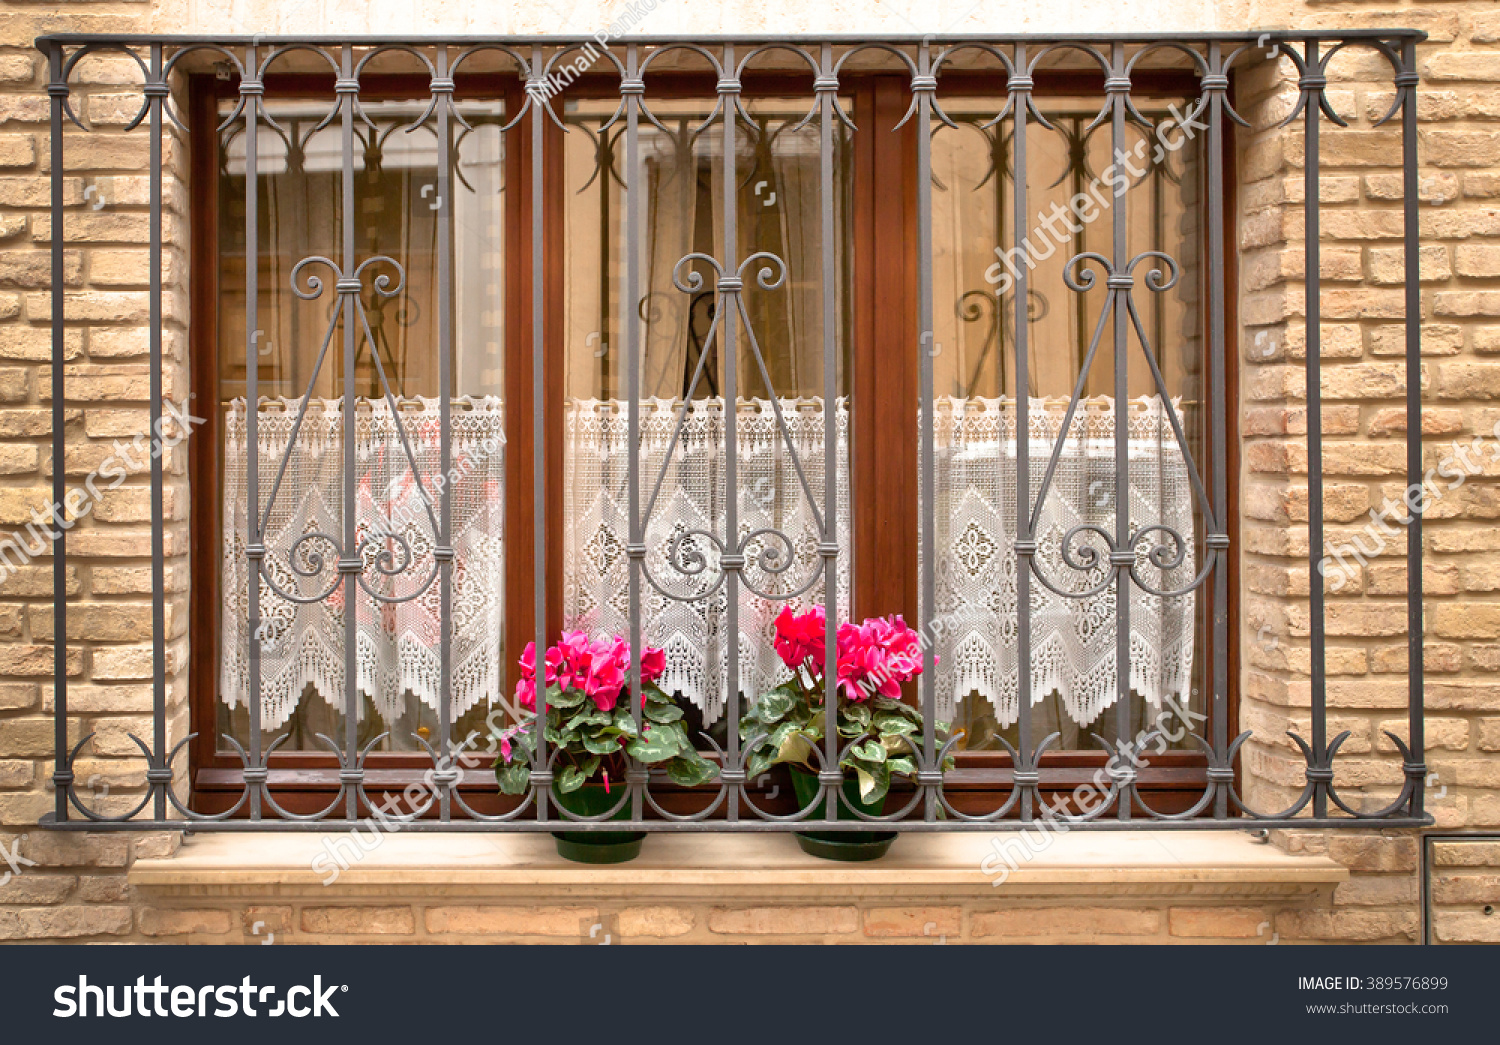 Grill Over Window Two Flowers Stock Photo 389576899